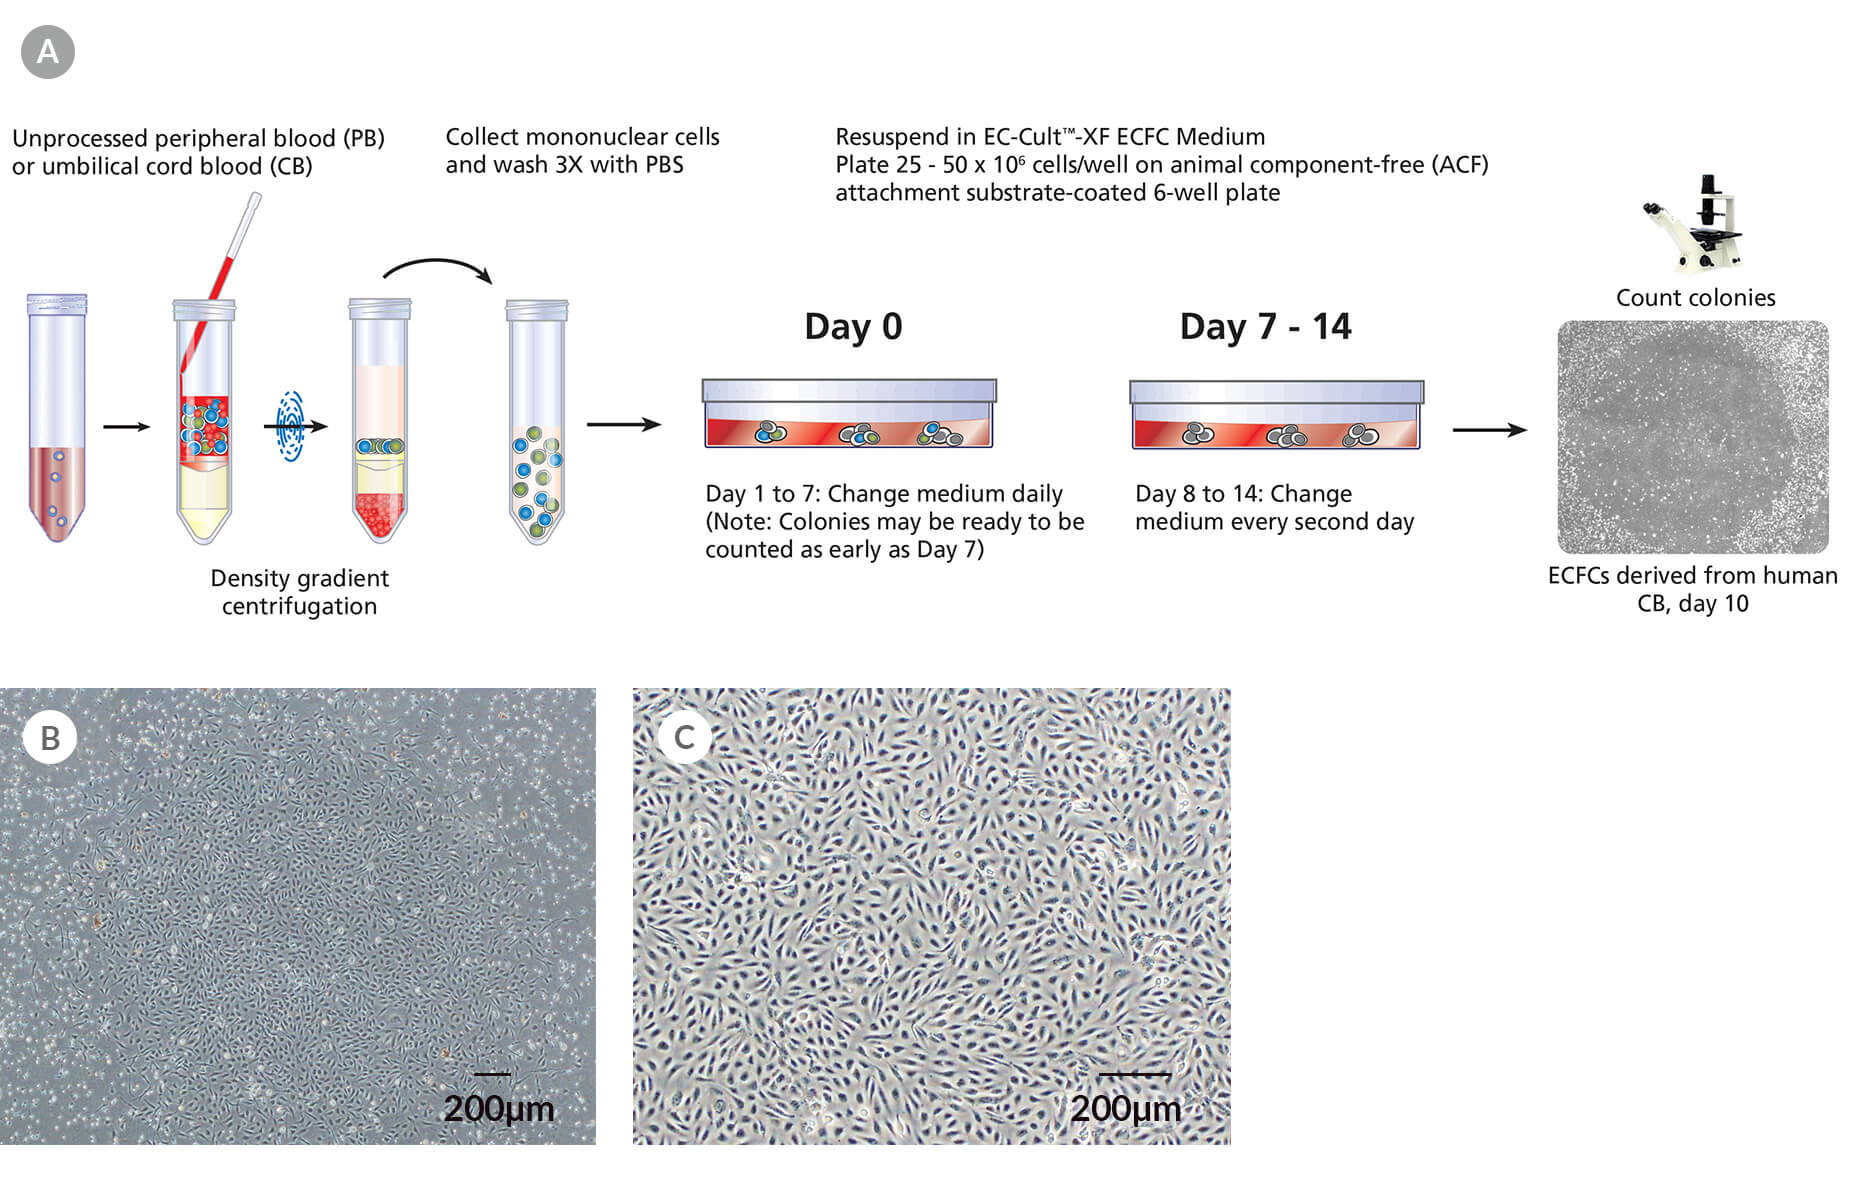 Derivation and Colony Assay for Human ECFCs Using EC-Cult™-XF ECFC Medium